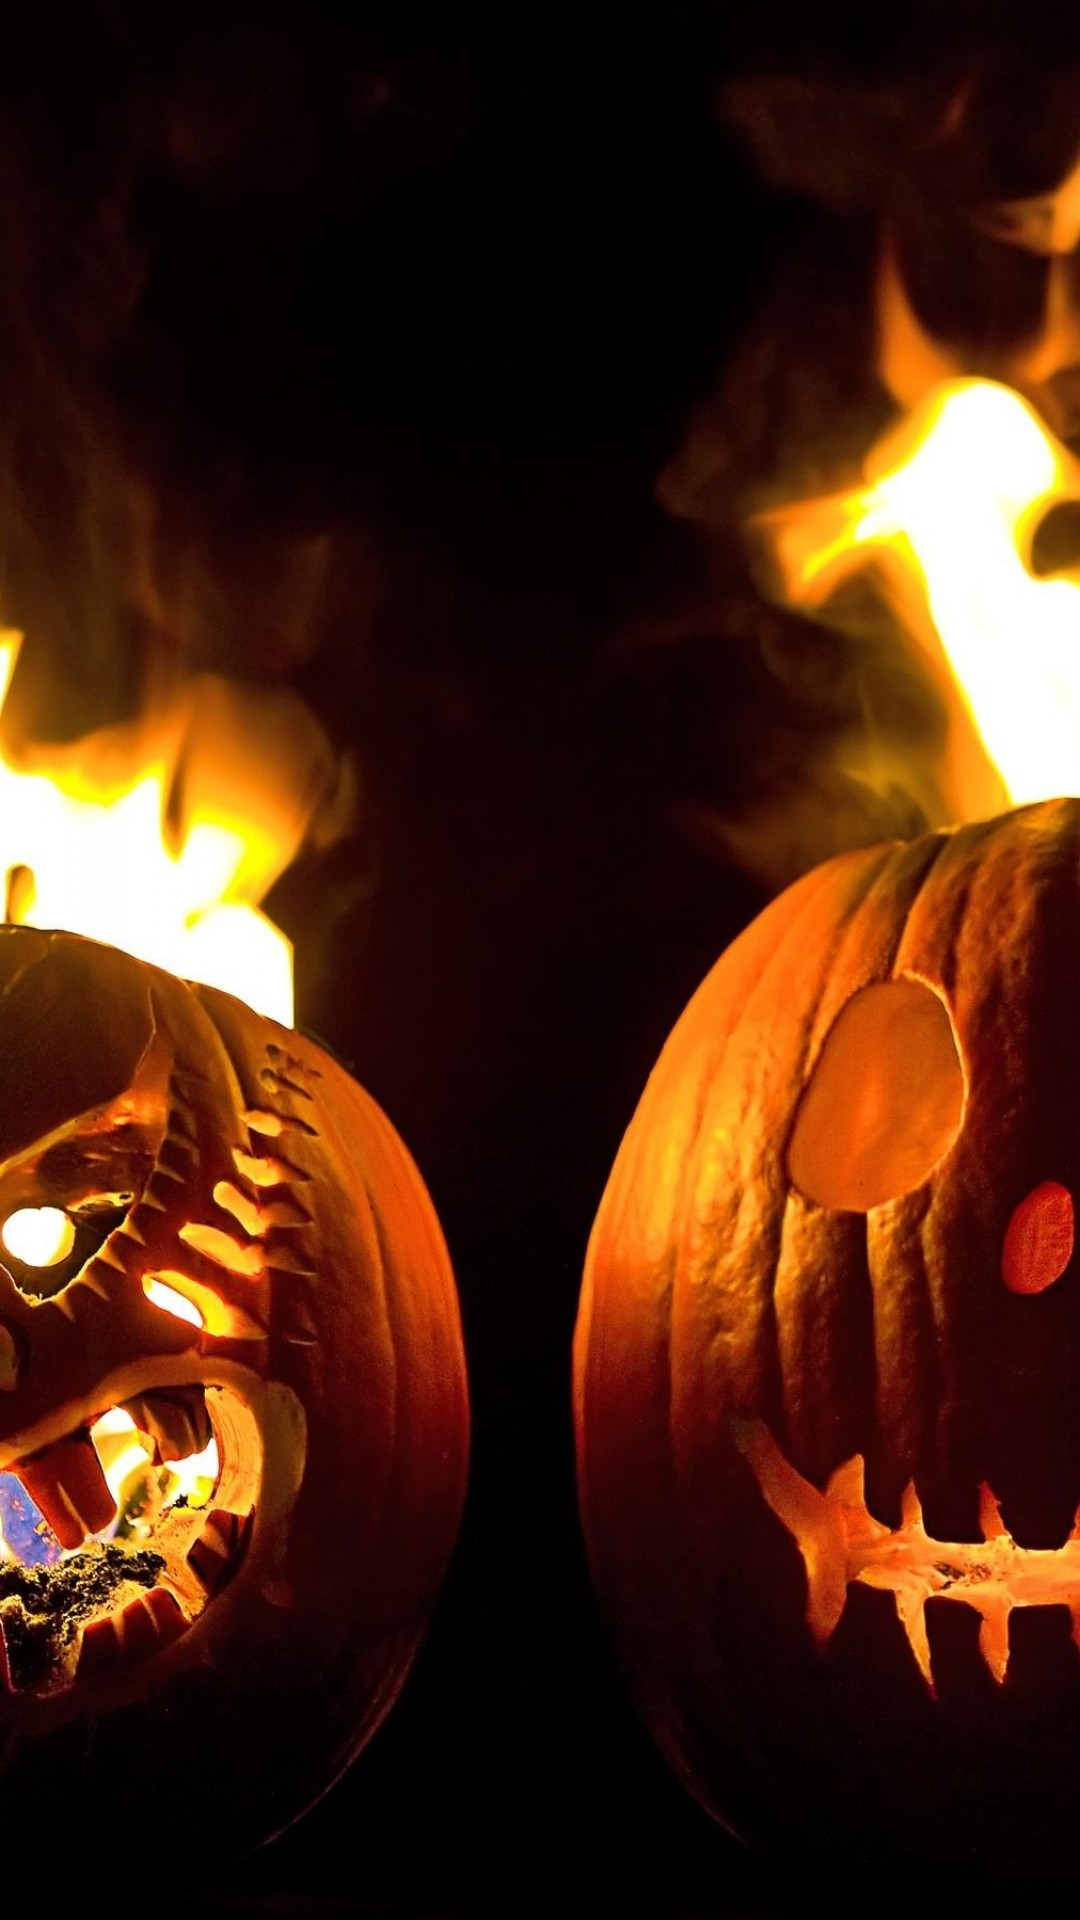 1080x1920 Two Halloween Pumpkins Fire Android Wallpaper free download. Two Halloween  Pumpkins Fire Android Wallpaper Free Download